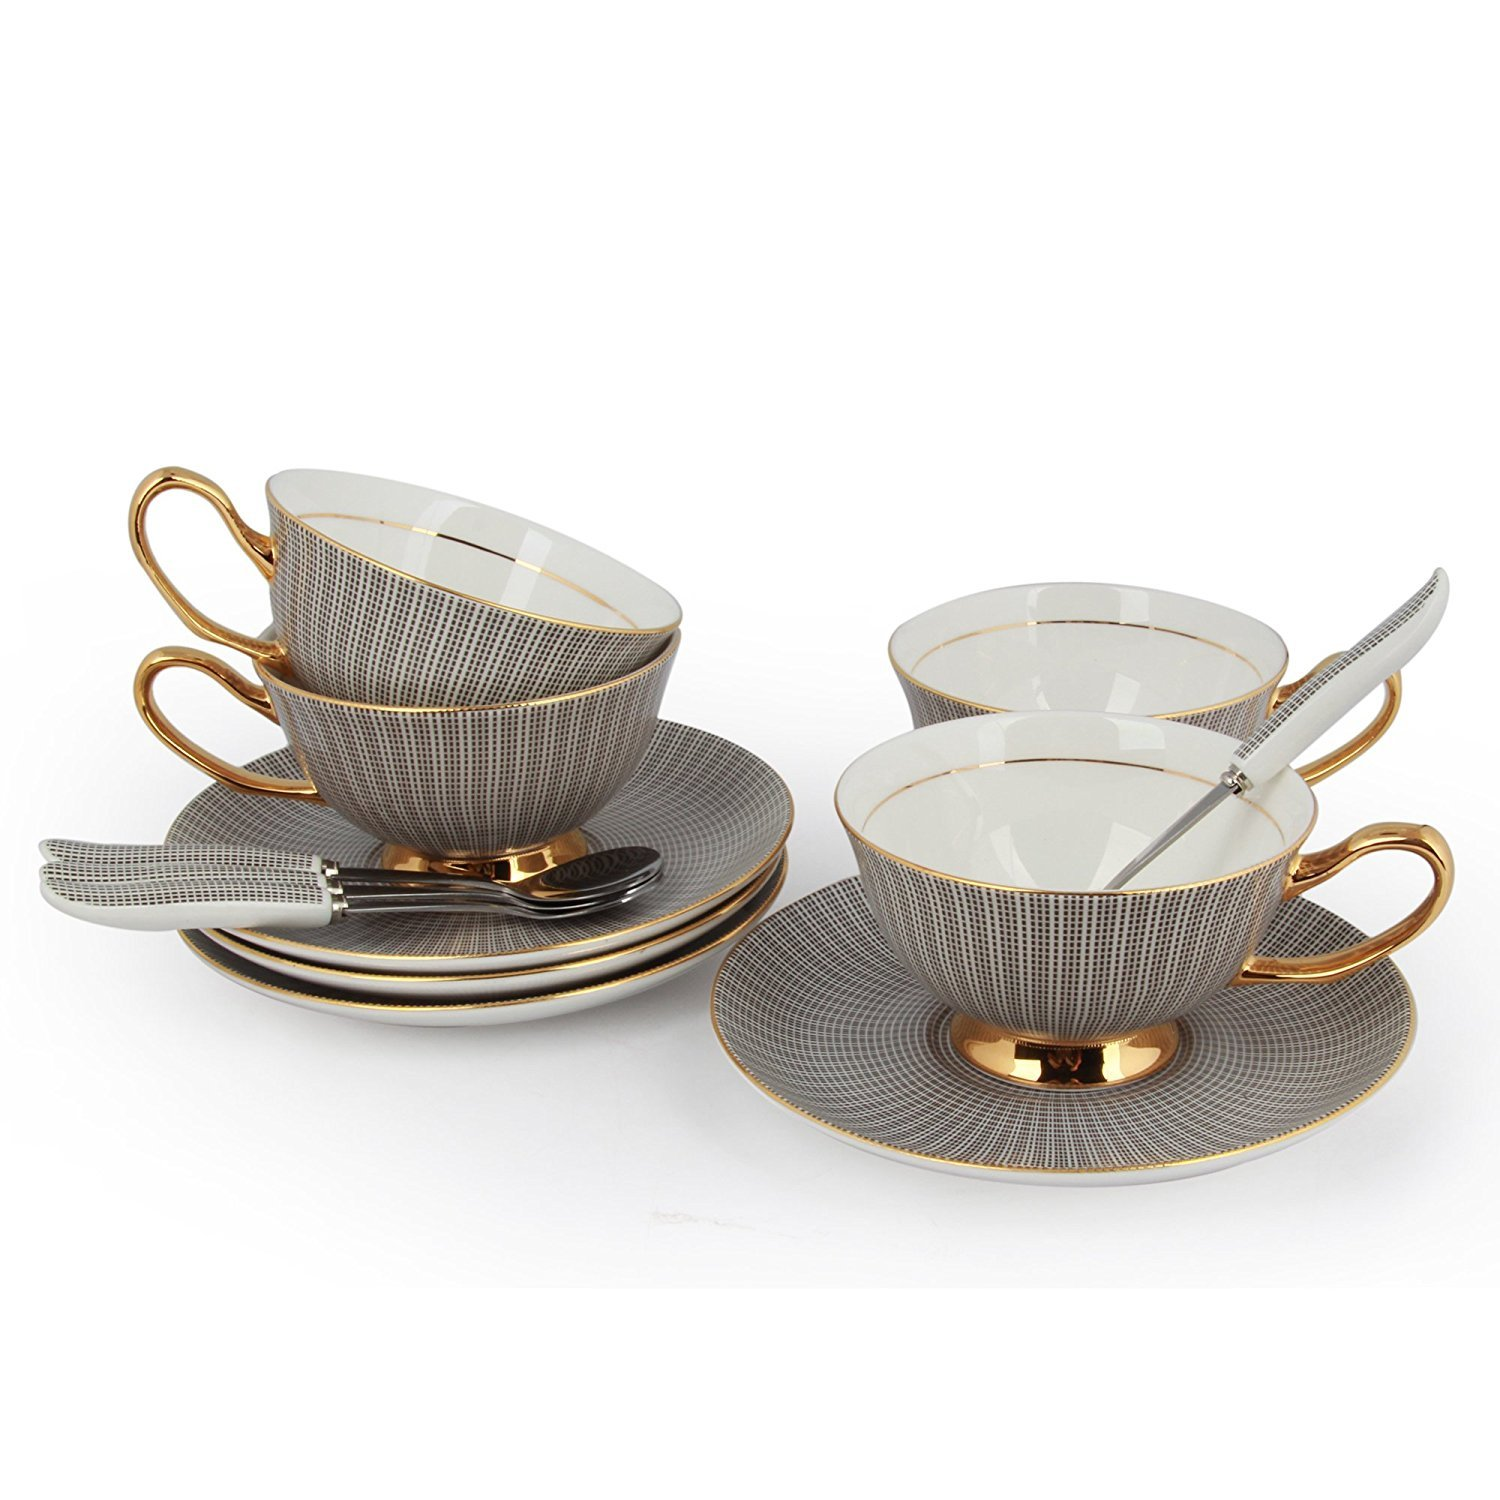 Set of 4 NDHT Bone China Teacups/Coffee Cups & Saucers Sets with Spoons-10.2Oz, for Home, Restaurants, Display & Holiday Gift for Family or Friends,Black,With two Gift Boxes